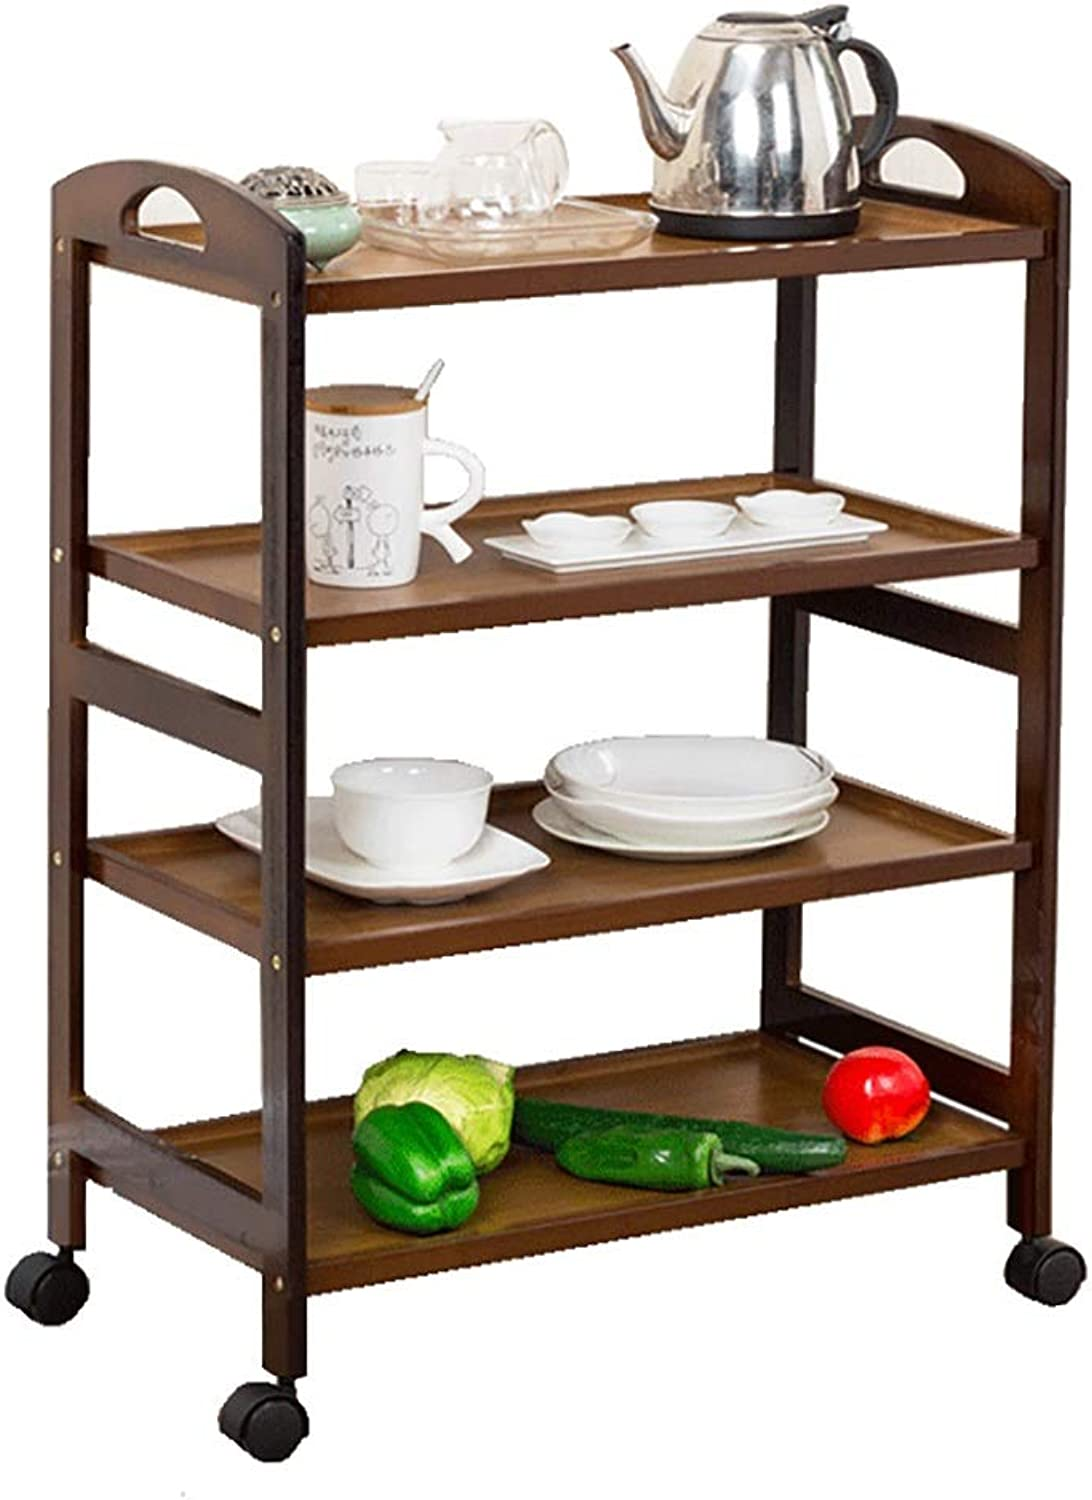 3 4-tier Bathroom Kitchen Storage Trolley with Wheels, Multifunctional, Universal Storage Cart Wood Movable